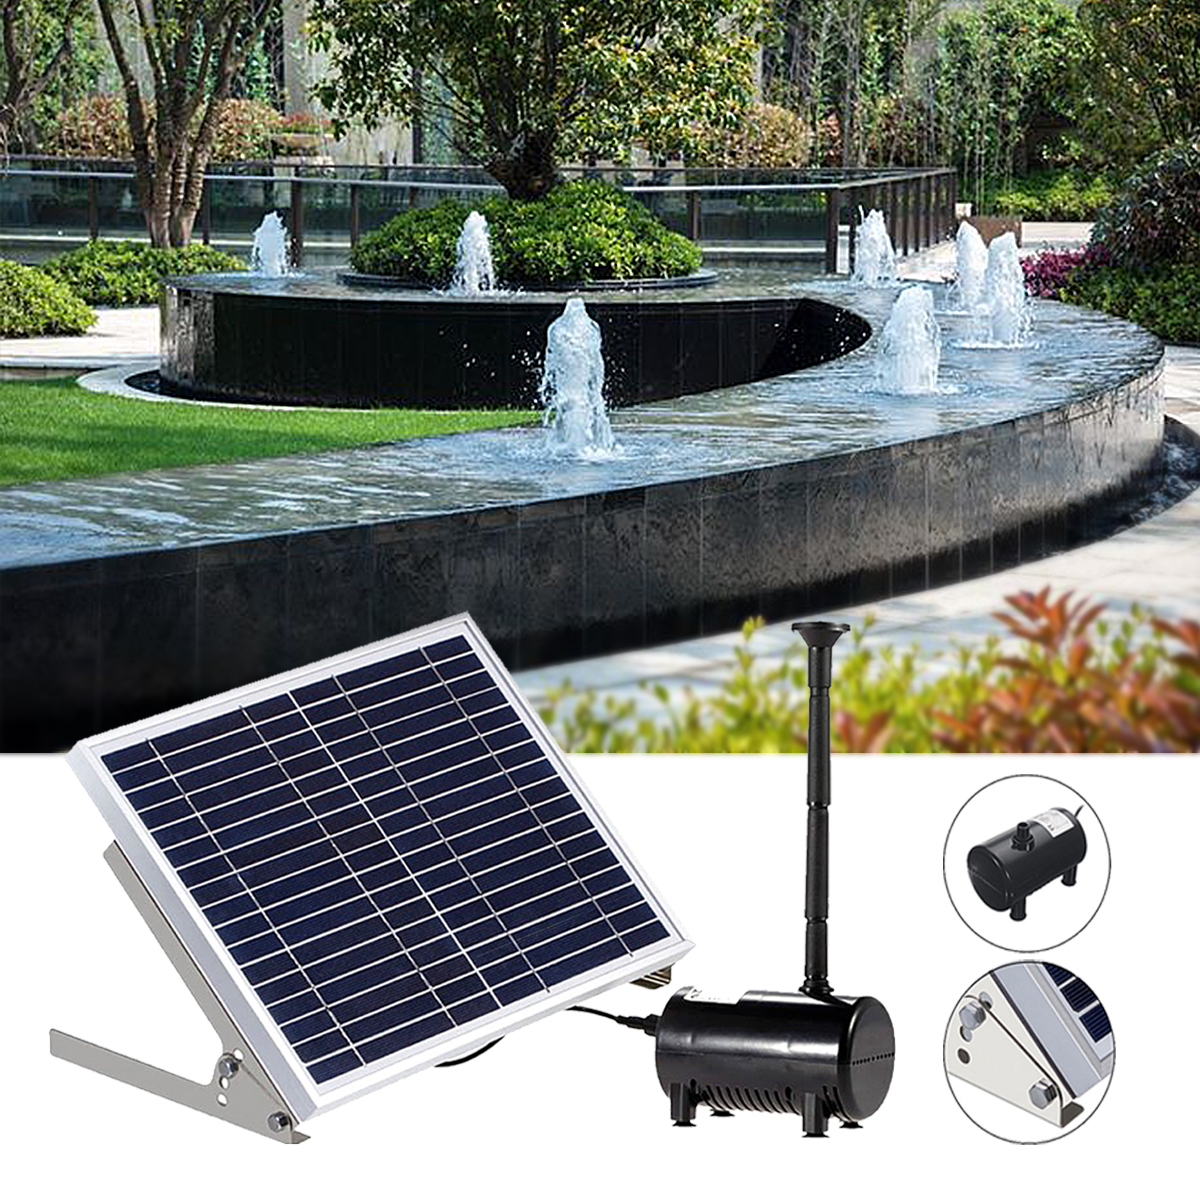 Solar Fountain Pump Solar Panel Powered Brushless Water Fountain Pump For Pond Garden Outdoor Submersible Kit